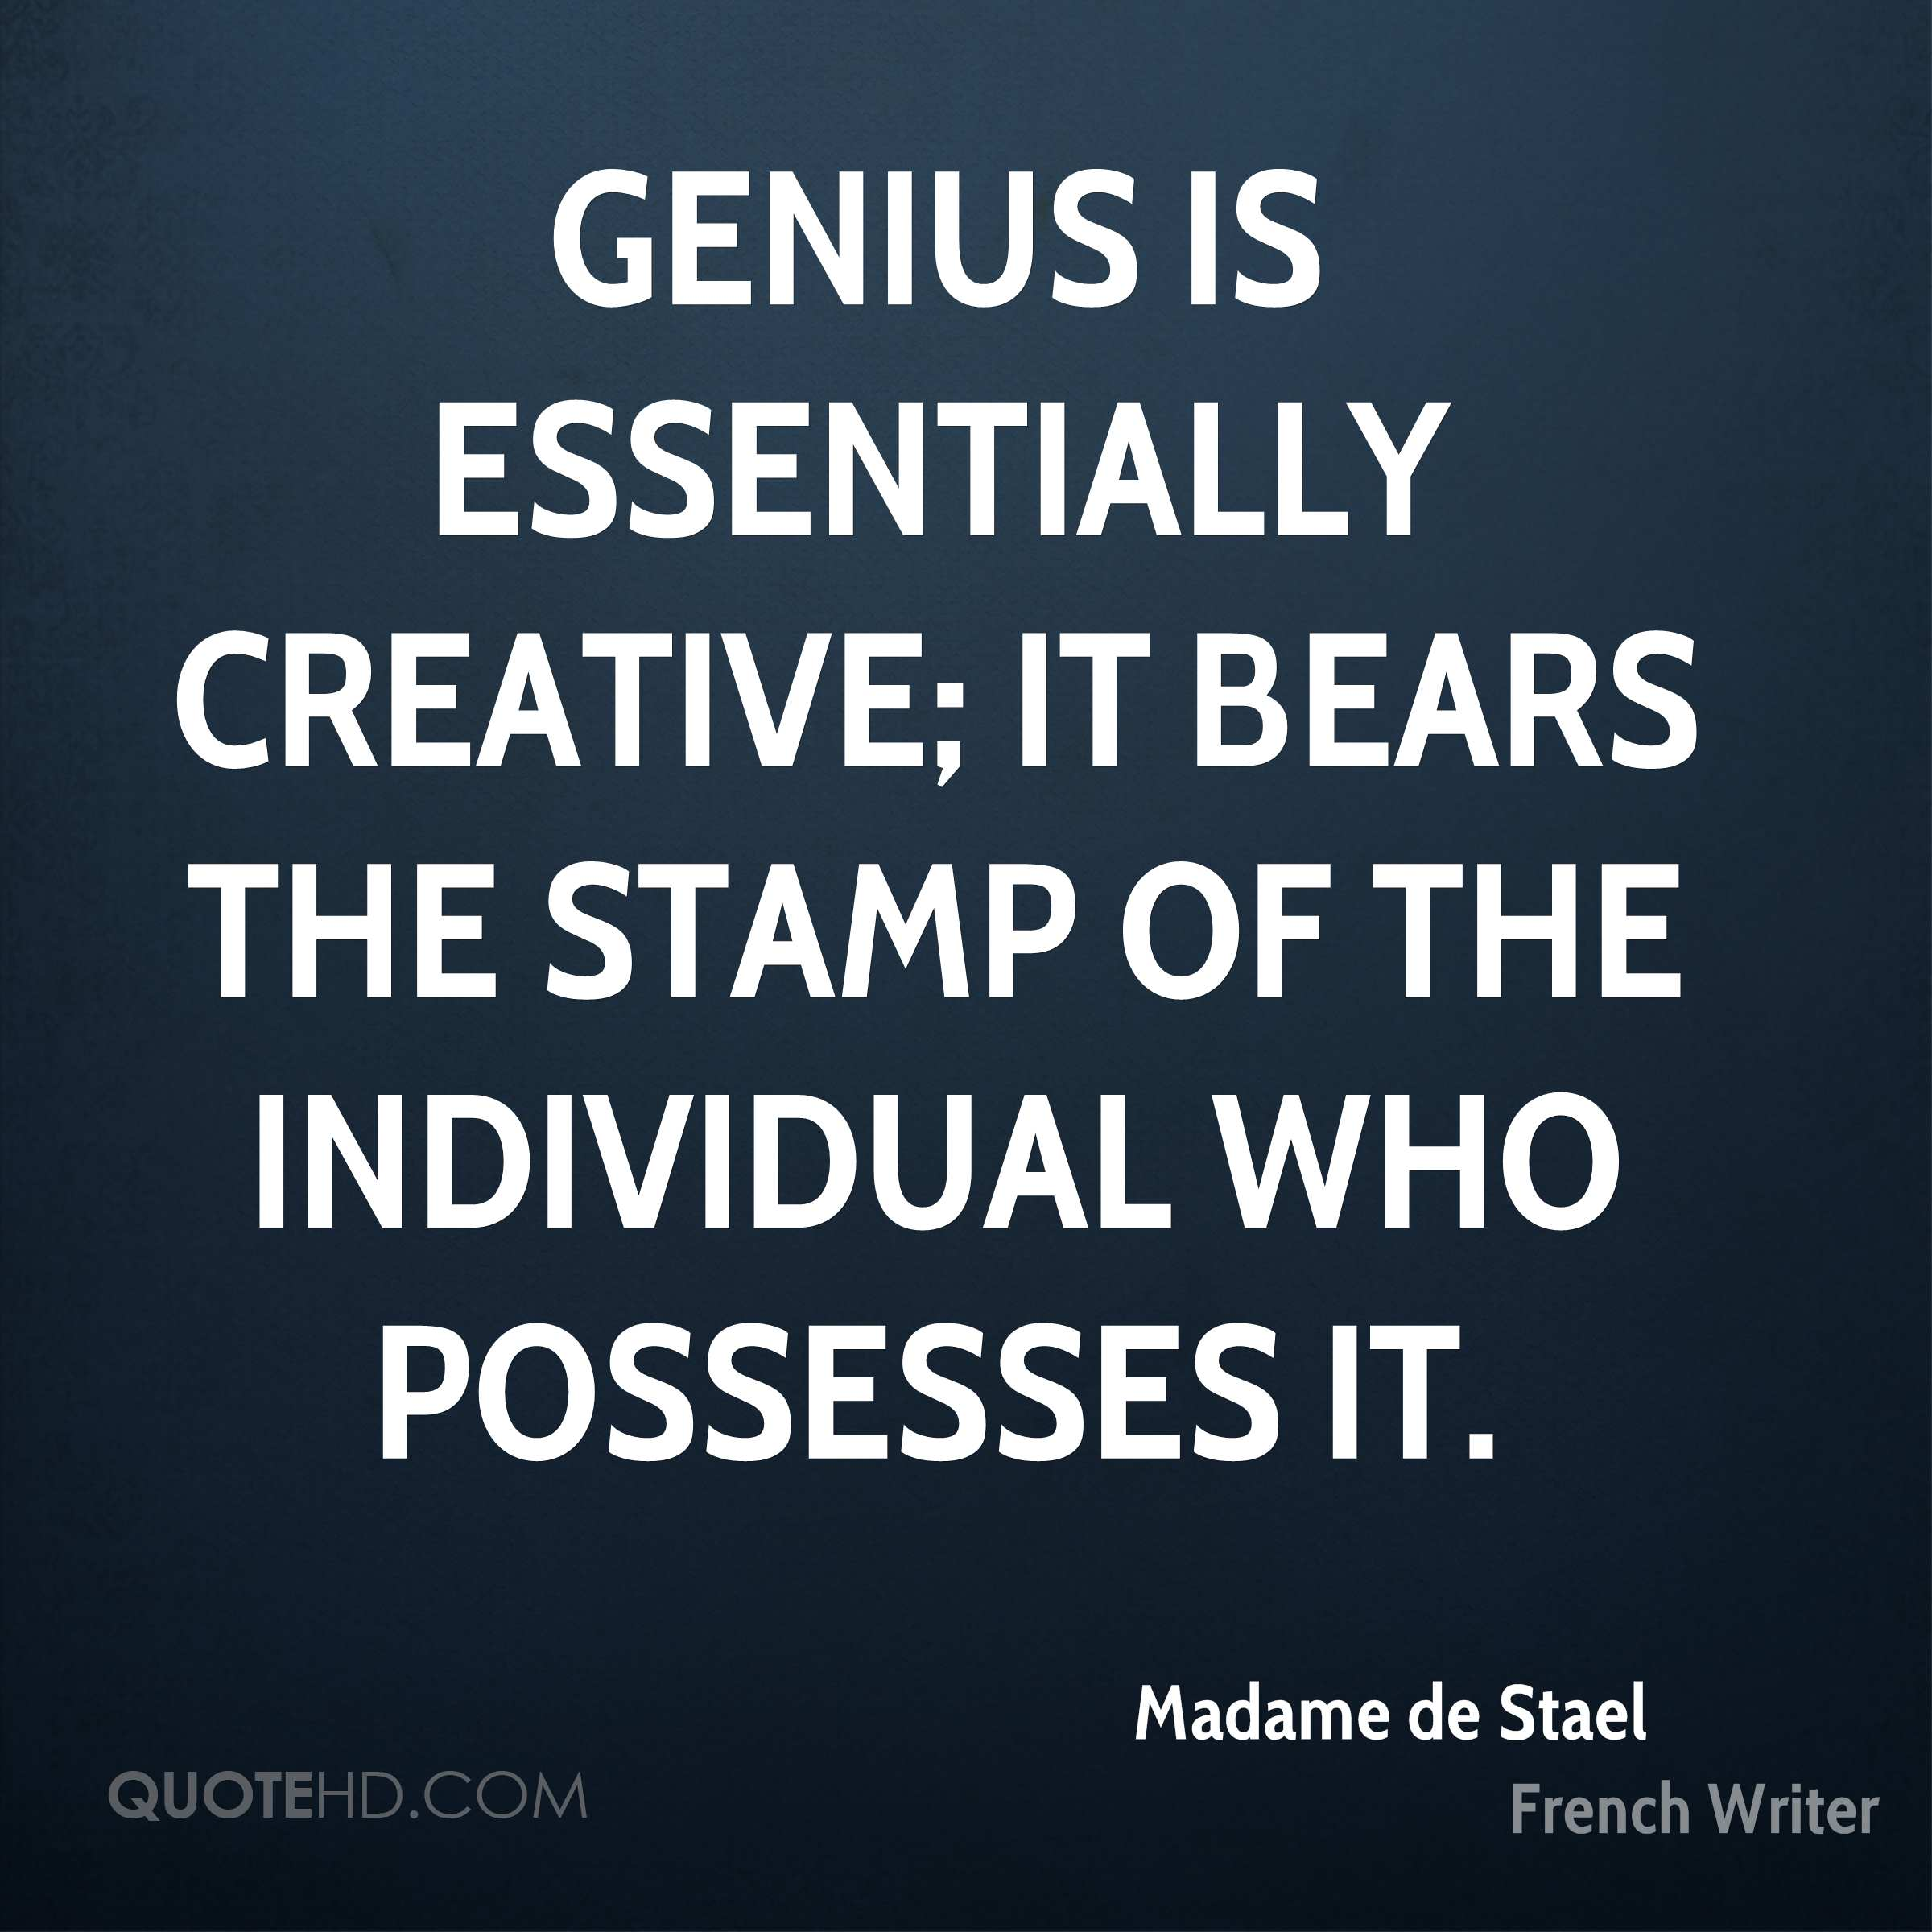 Genius is essentially creative; it bears the stamp of the individual who possesses it.